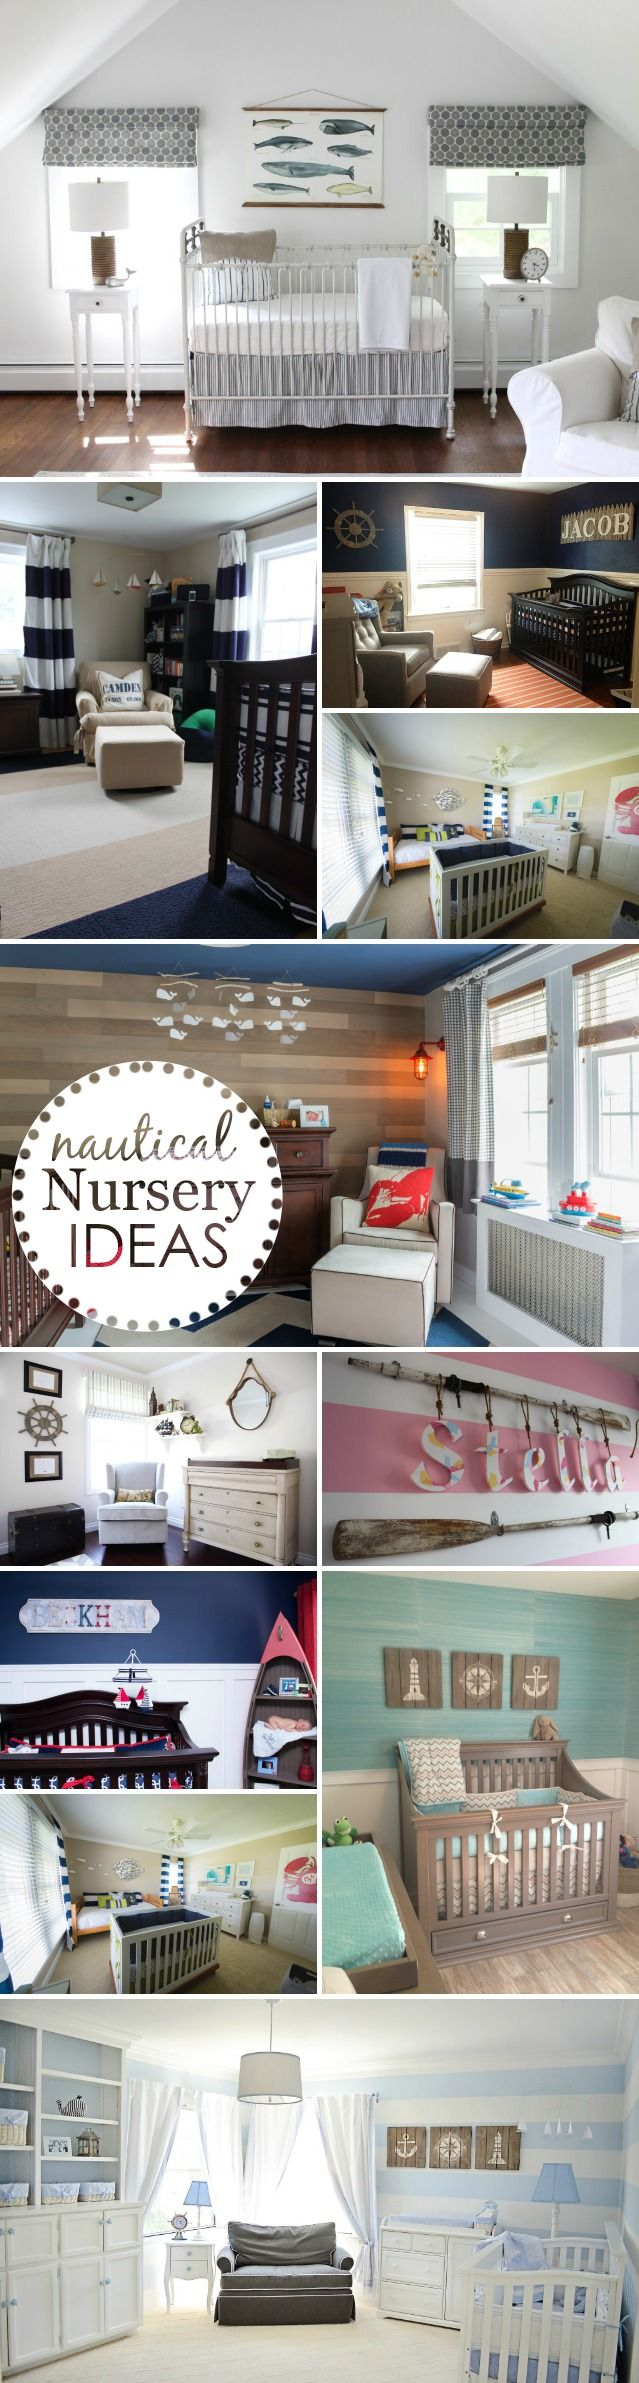 360 best Nursery Decor images on Pinterest | Bedroom, Blanket and ...